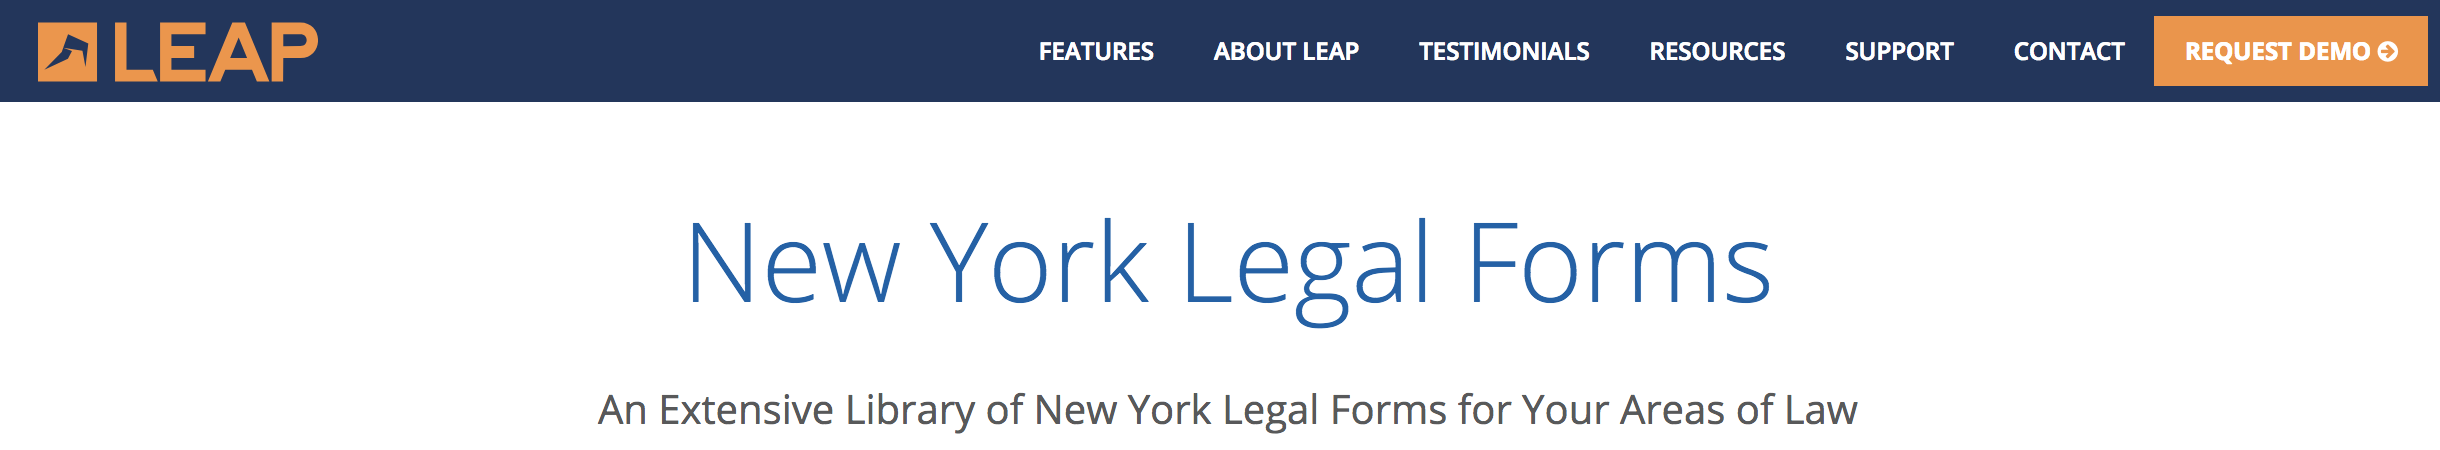 LEAP Announces Integration With The Popular Blumberg Legal Forms - Legal forms for attorneys